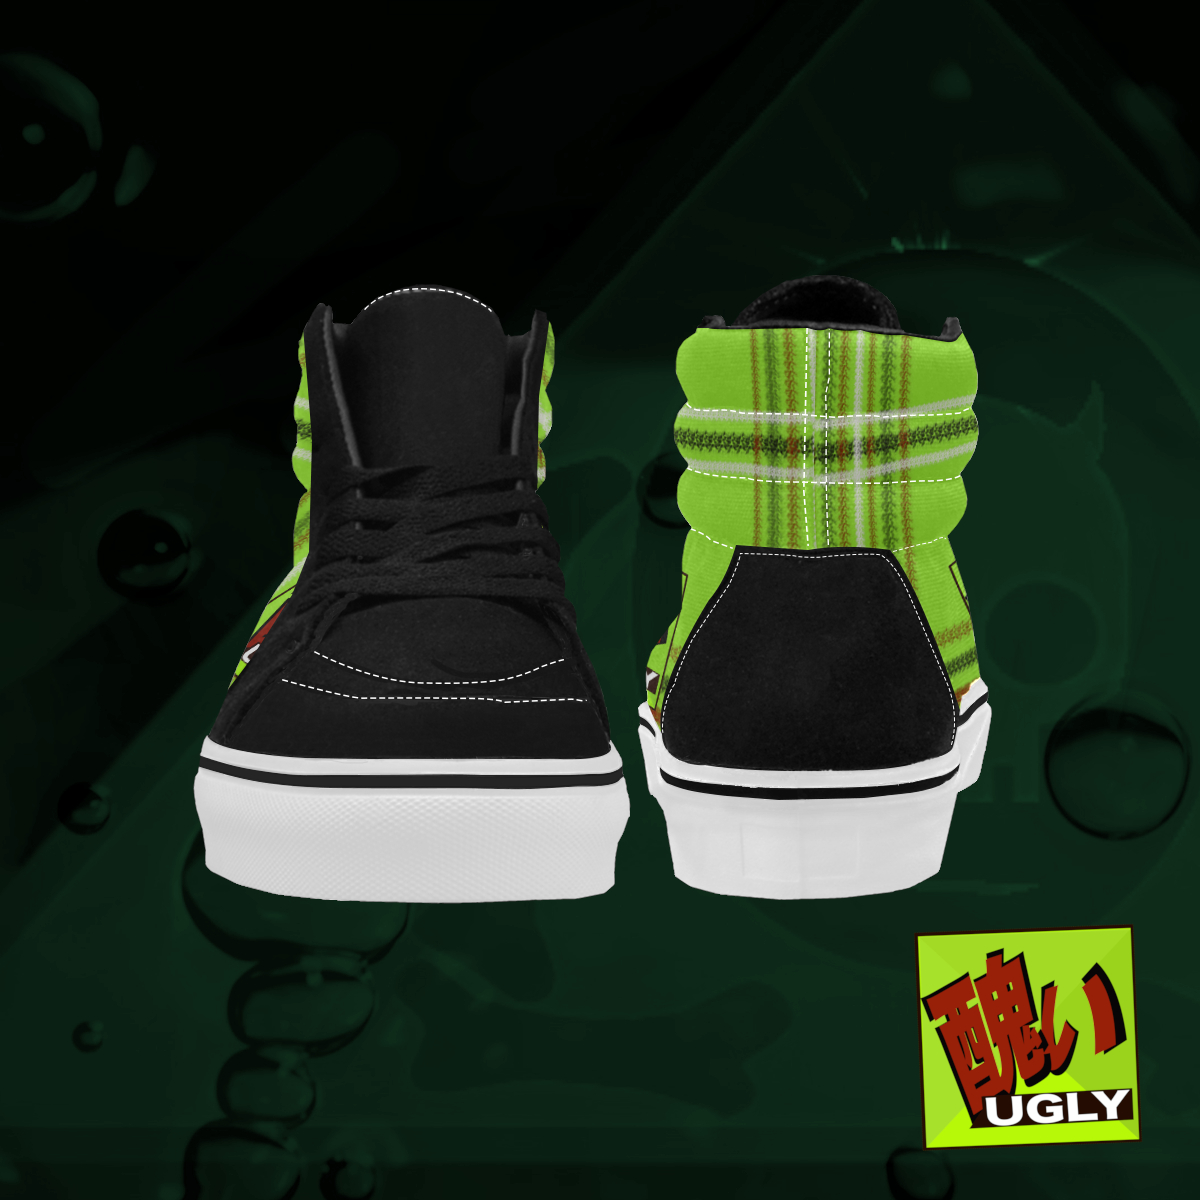 UGLY tartan high top skate shoes The Lowest of Low Lime